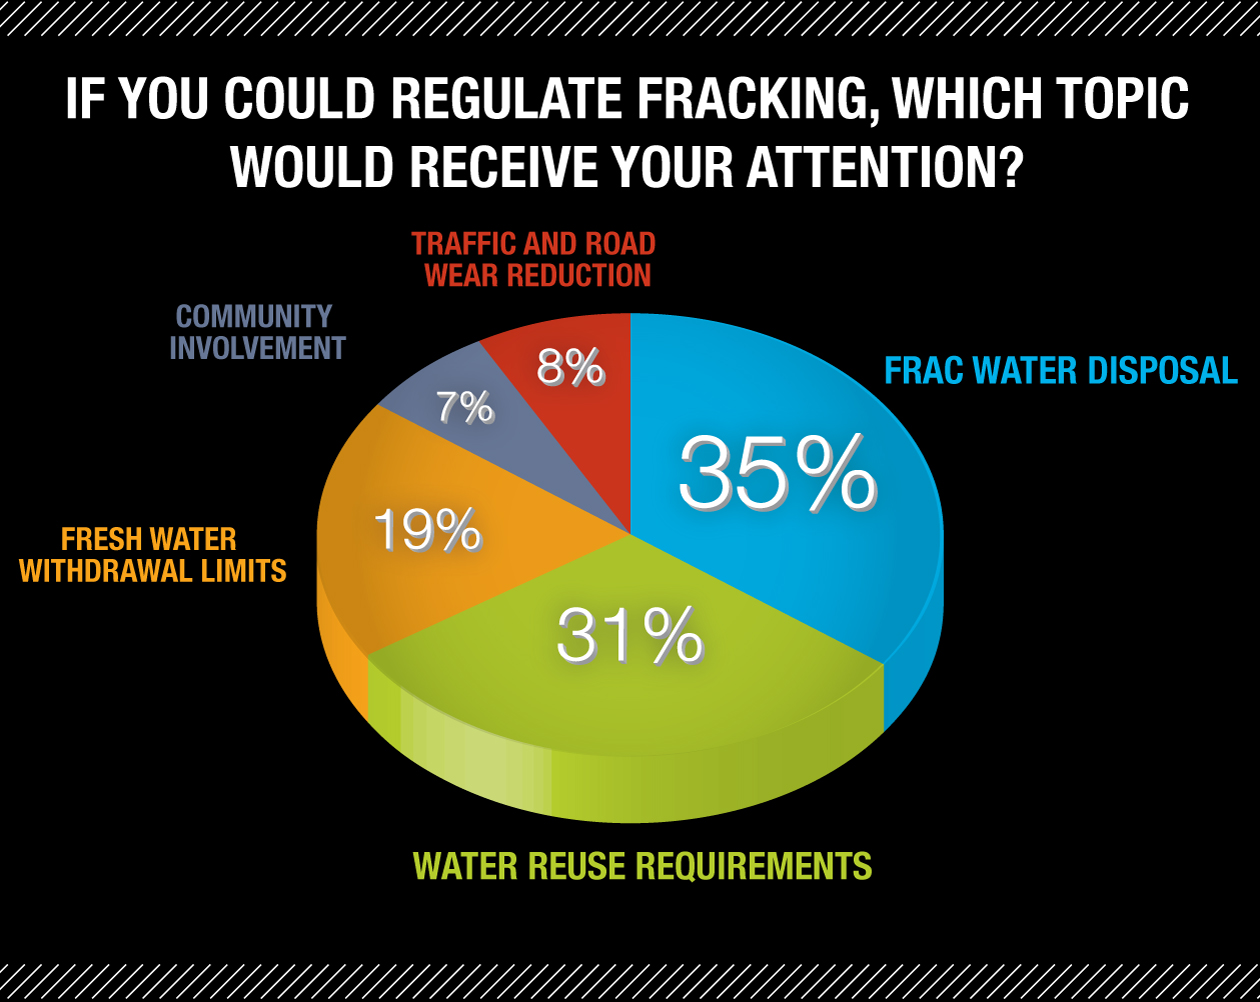 Regulating-Fracking-Results